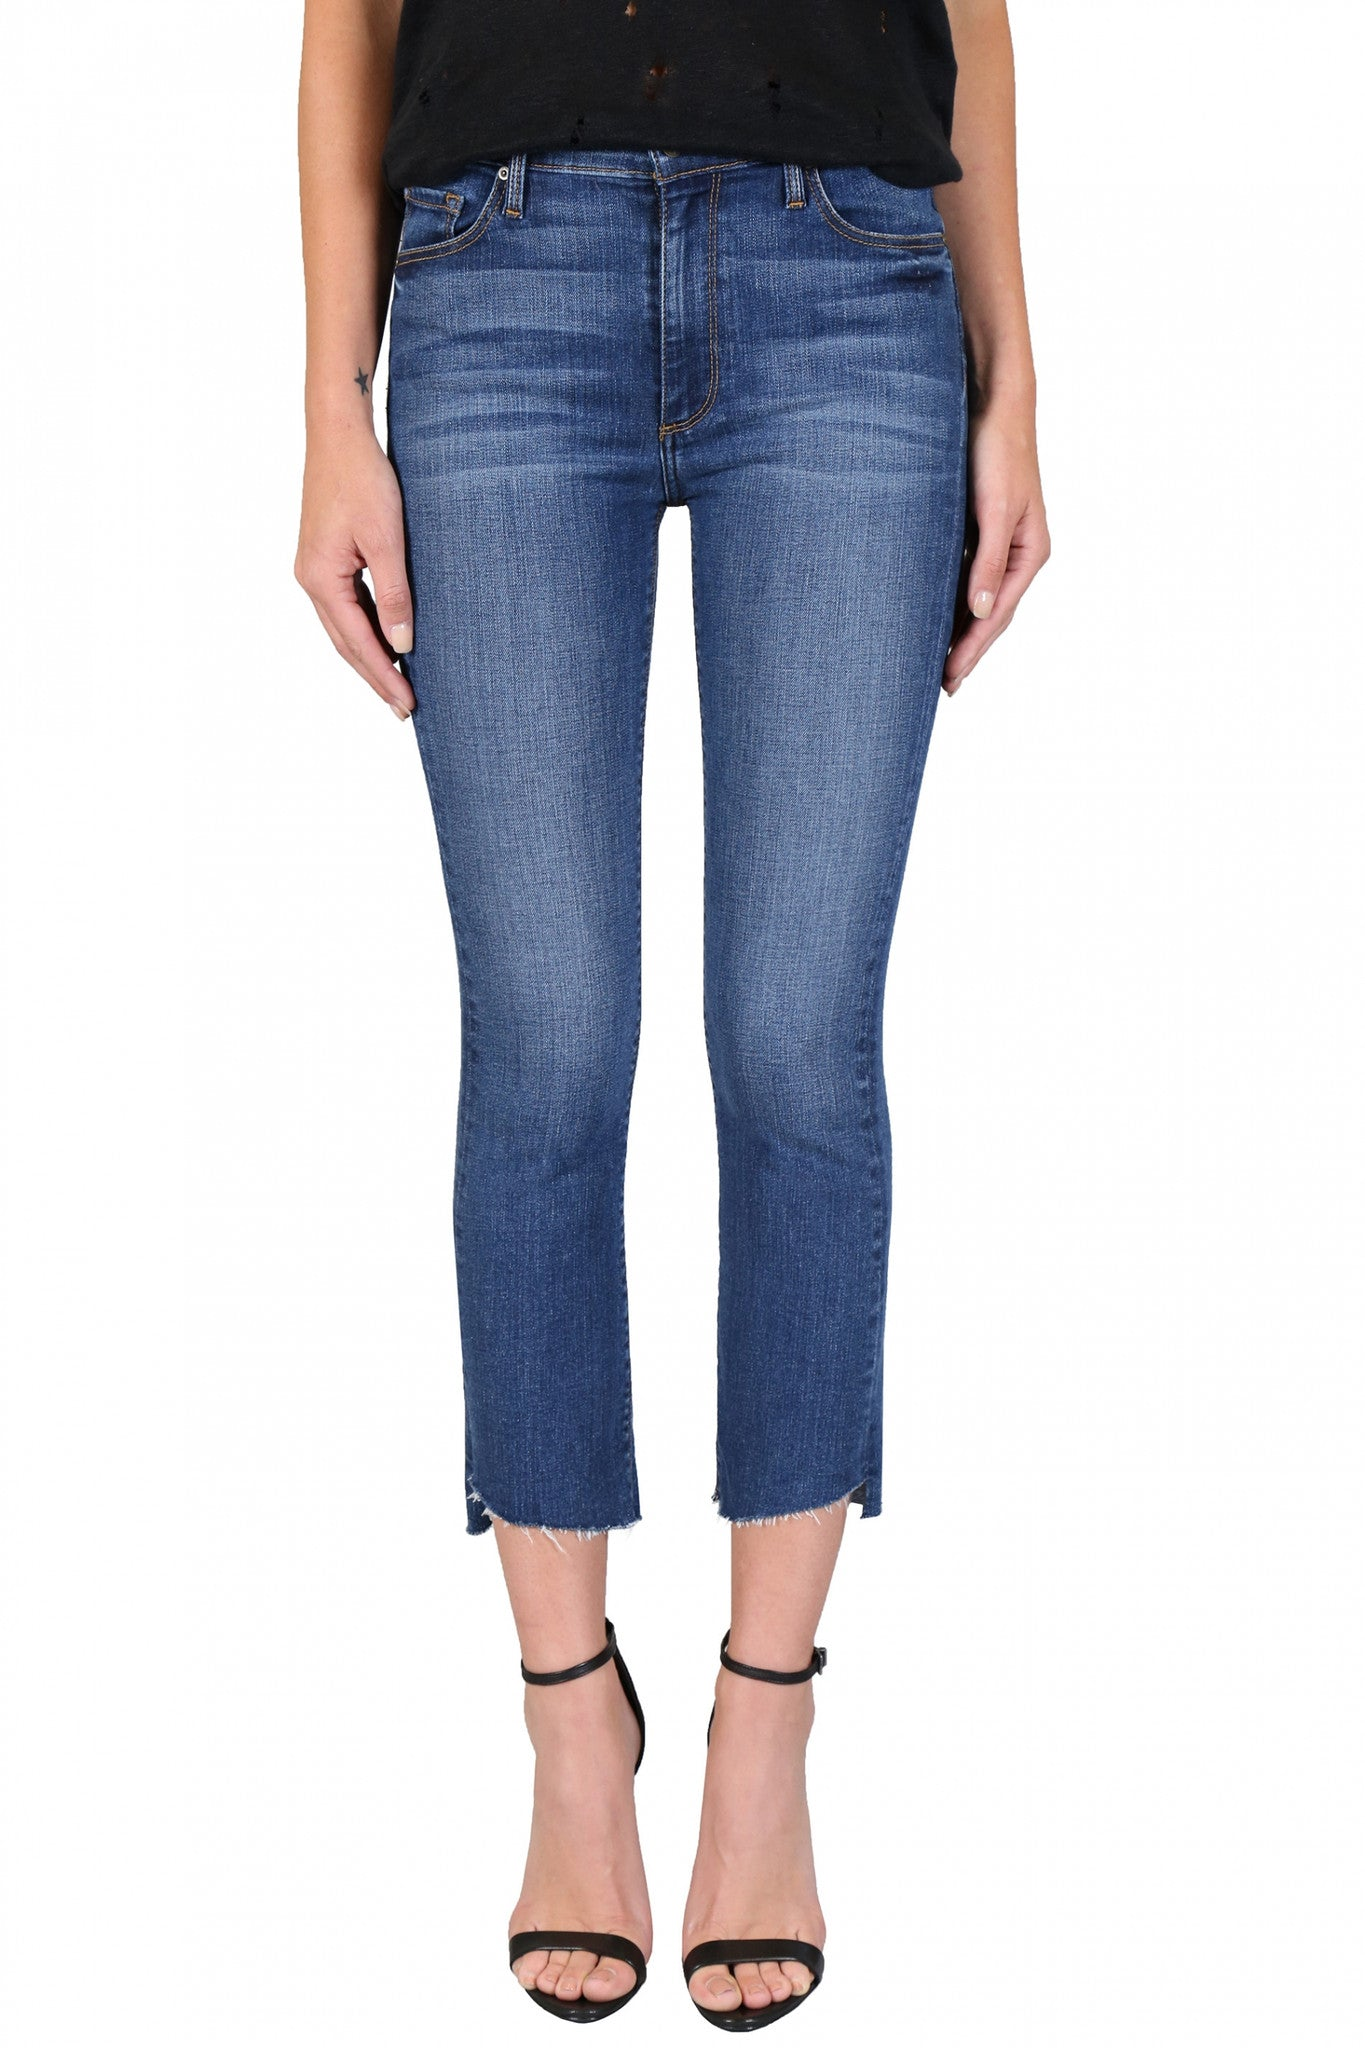 Black Orchid Slant Fray Denim